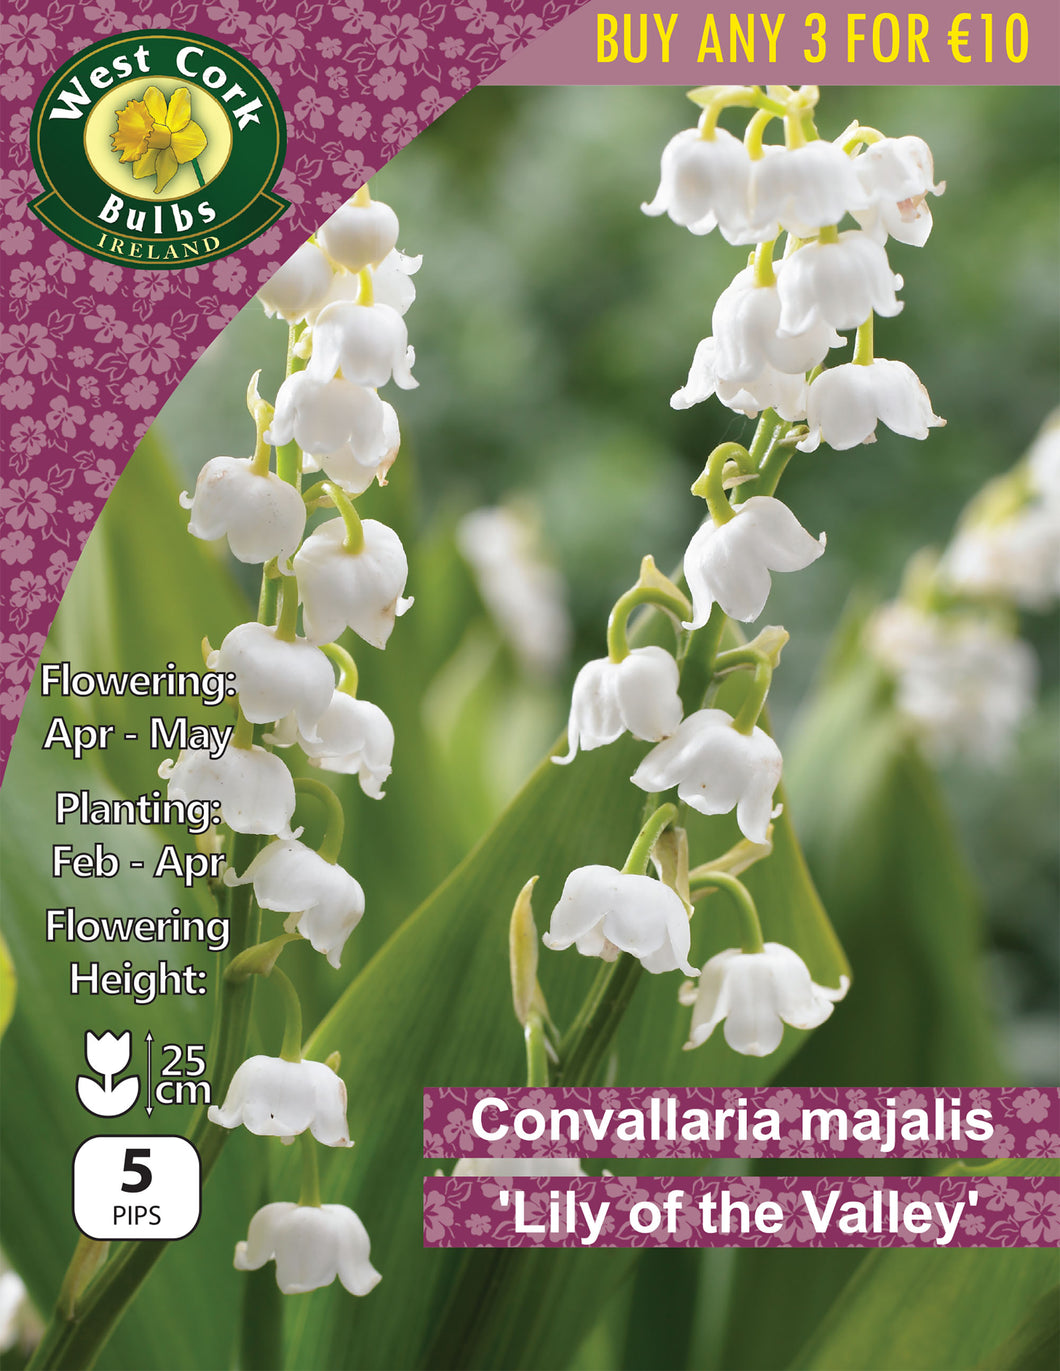 Convallaria majalis 'Lily of the Valley'